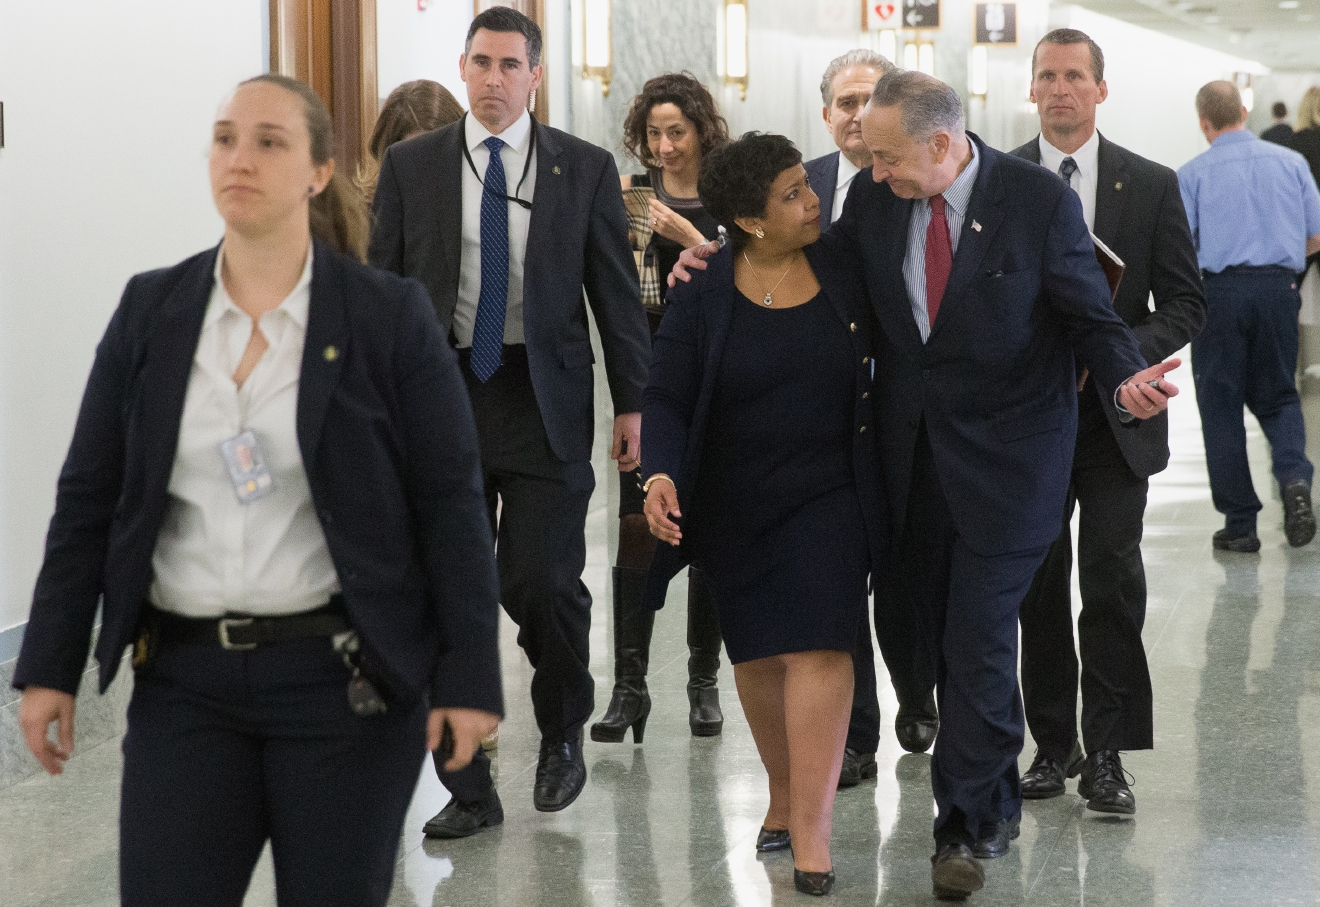 Attorney General Loretta Lynch walks with Sen. Charles Schumer, D-N.Y. as she arrives on Capitol Hill in Washington, Wednesday, March 9, 2016, to testify before the Senate Judiciary Committee hearing on oversight of the Justice Department. (AP Photo/Andrew Harnik)